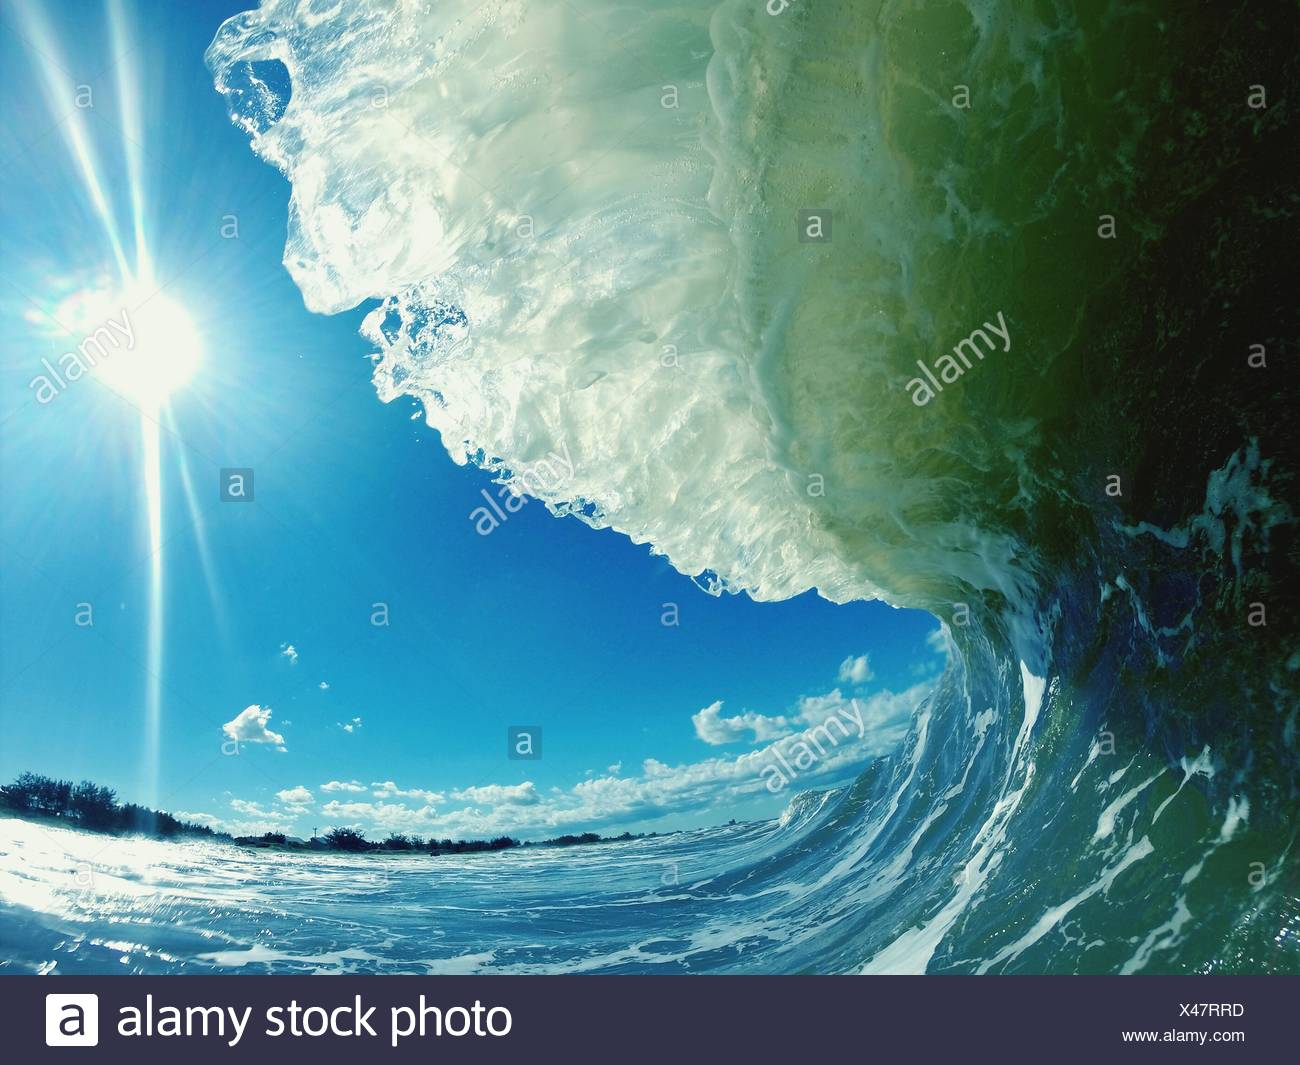 Close-Up Of Breaking Wave - Stock Image